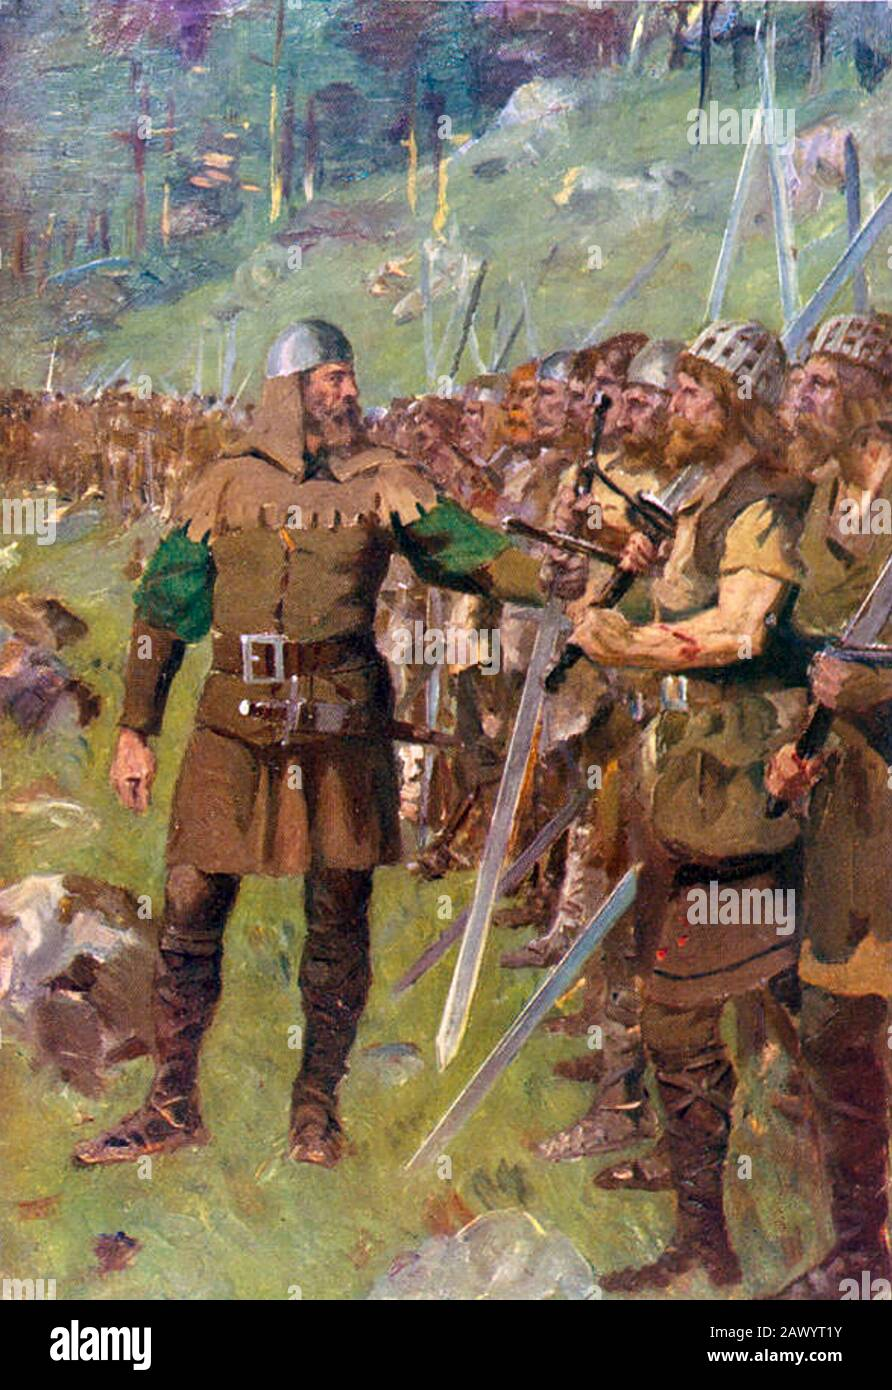 BATTLE OF SEMPACH 9 July 1386. Petermann of Gundoldingen rallies his Swiss soldiers as they prepare to face Leopold III, Duke of Austria's army Stock Photo